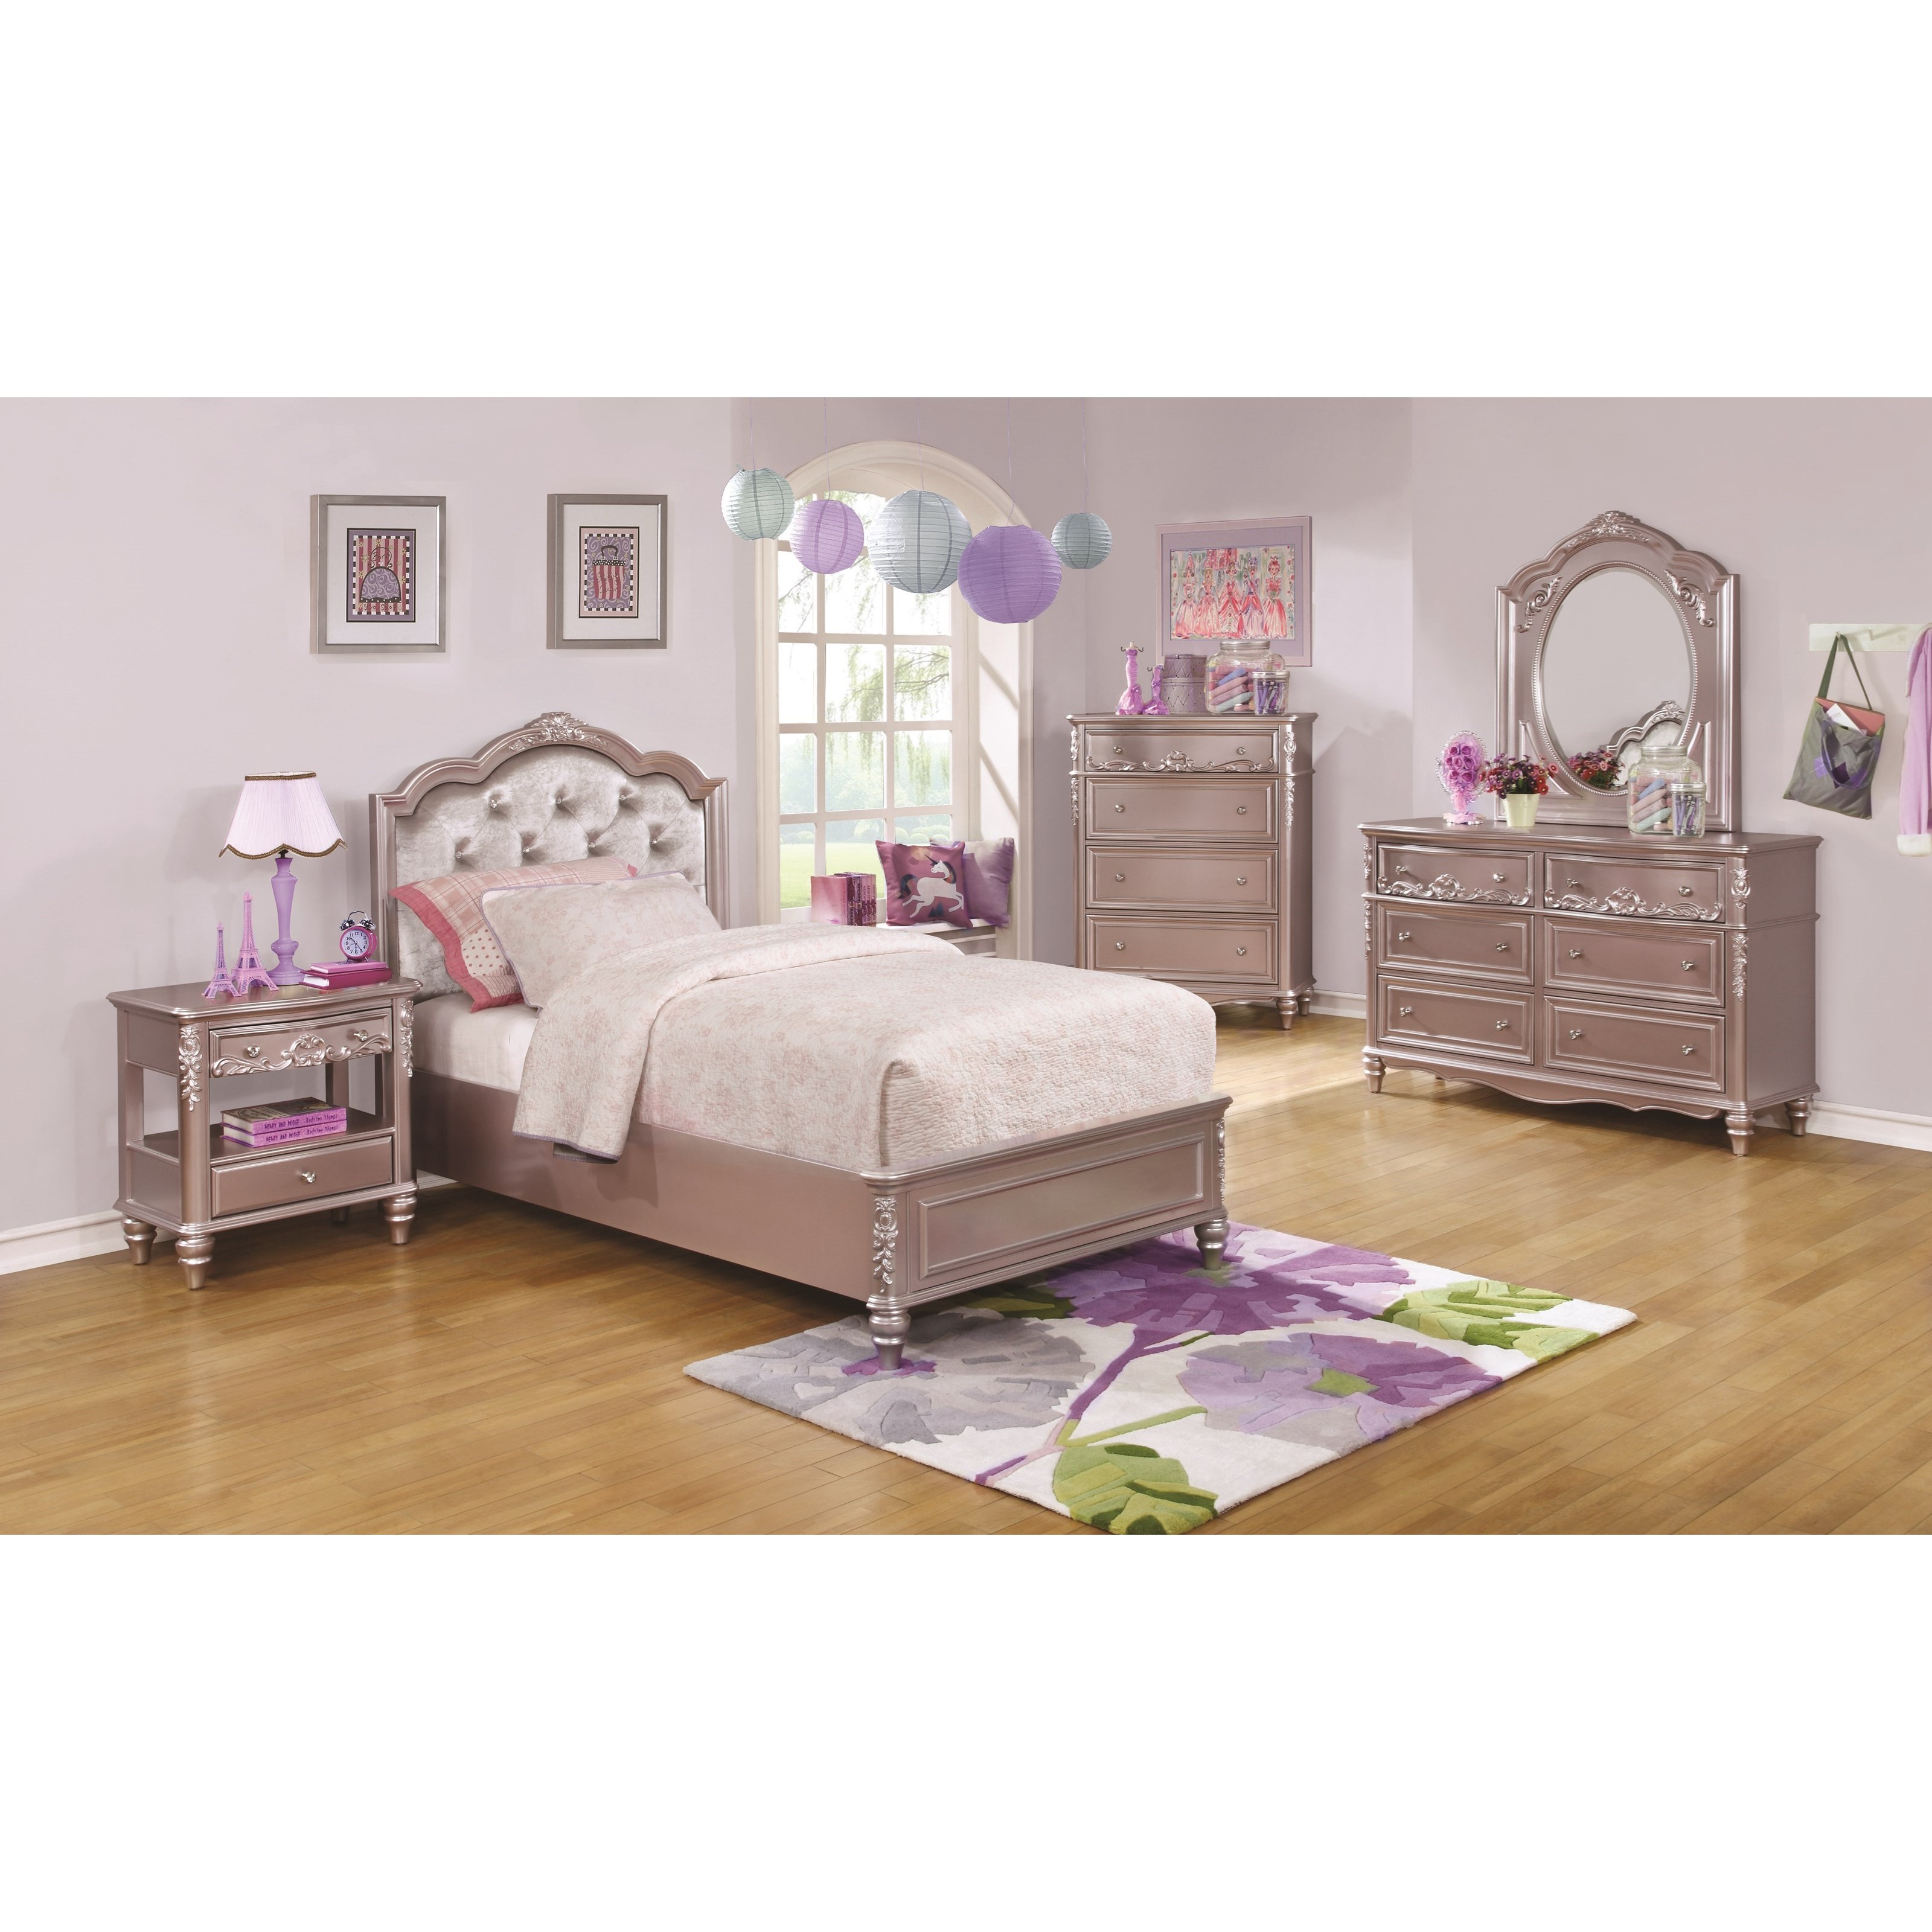 Caroline Full Bedroom Group by Coaster at Northeast Factory Direct